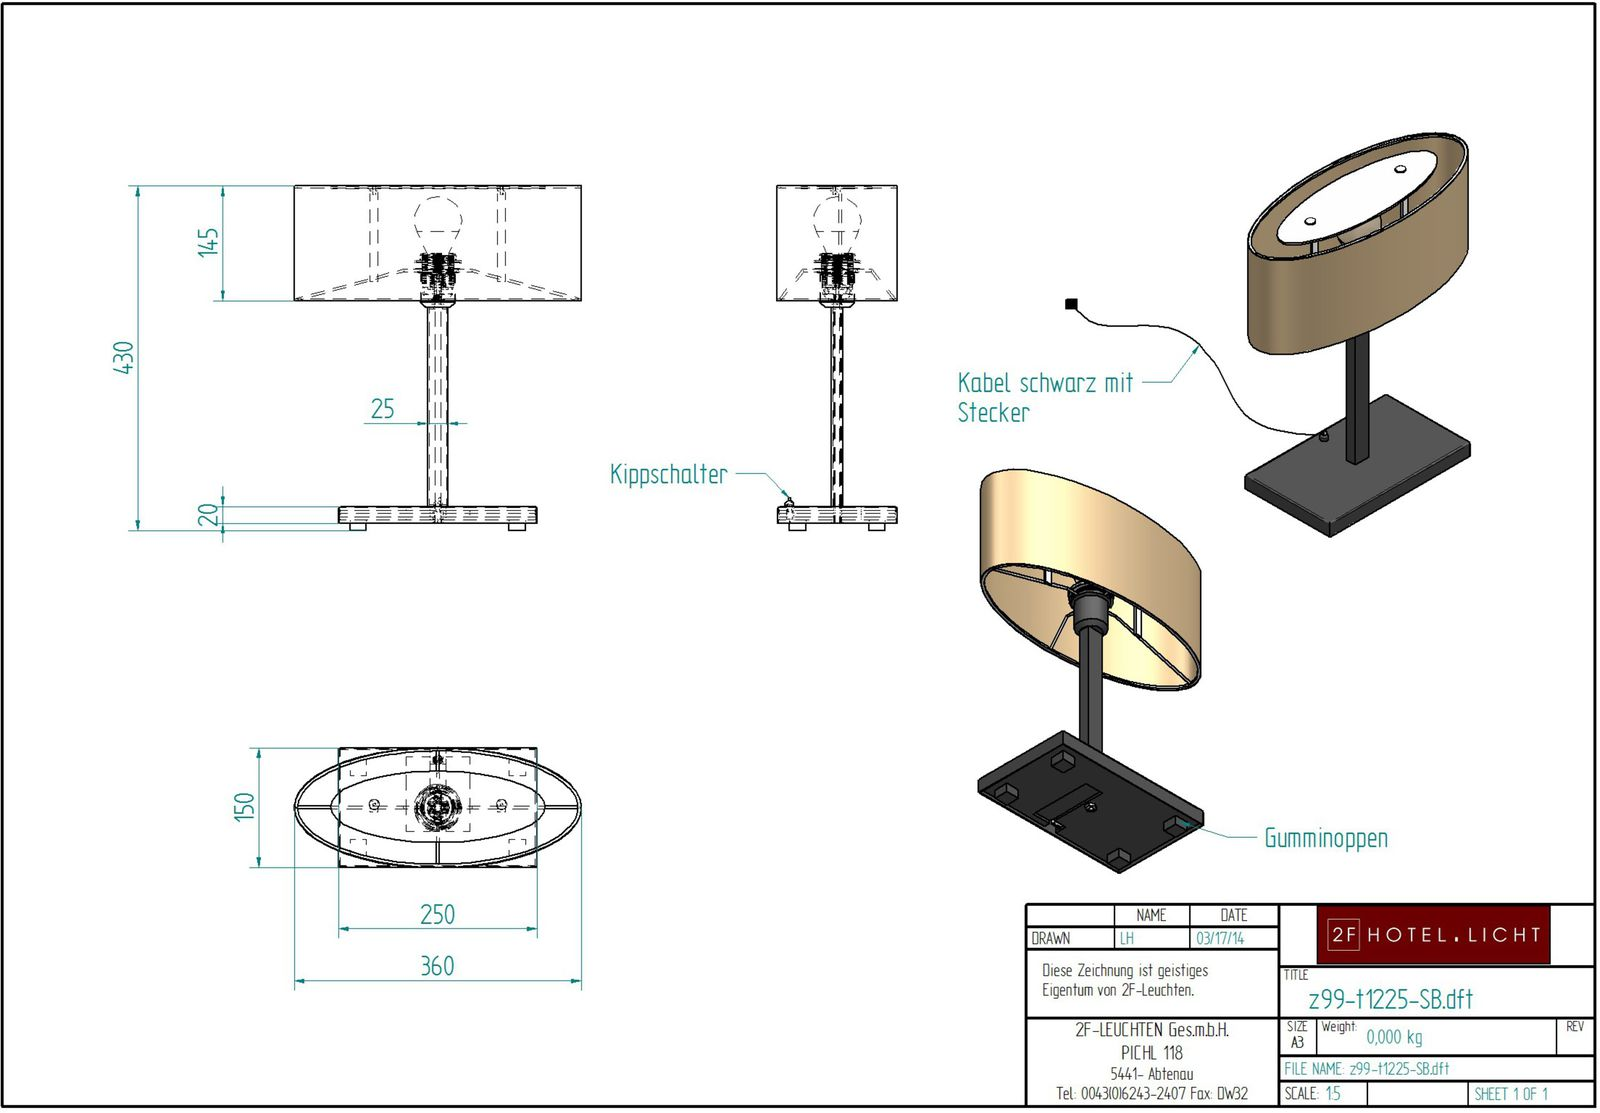 Table lamp 1flg., height=420mm, shade: length=360mm, wide=150mm, height=145mm, surface: chrome, technical details: 1xE27, 11W